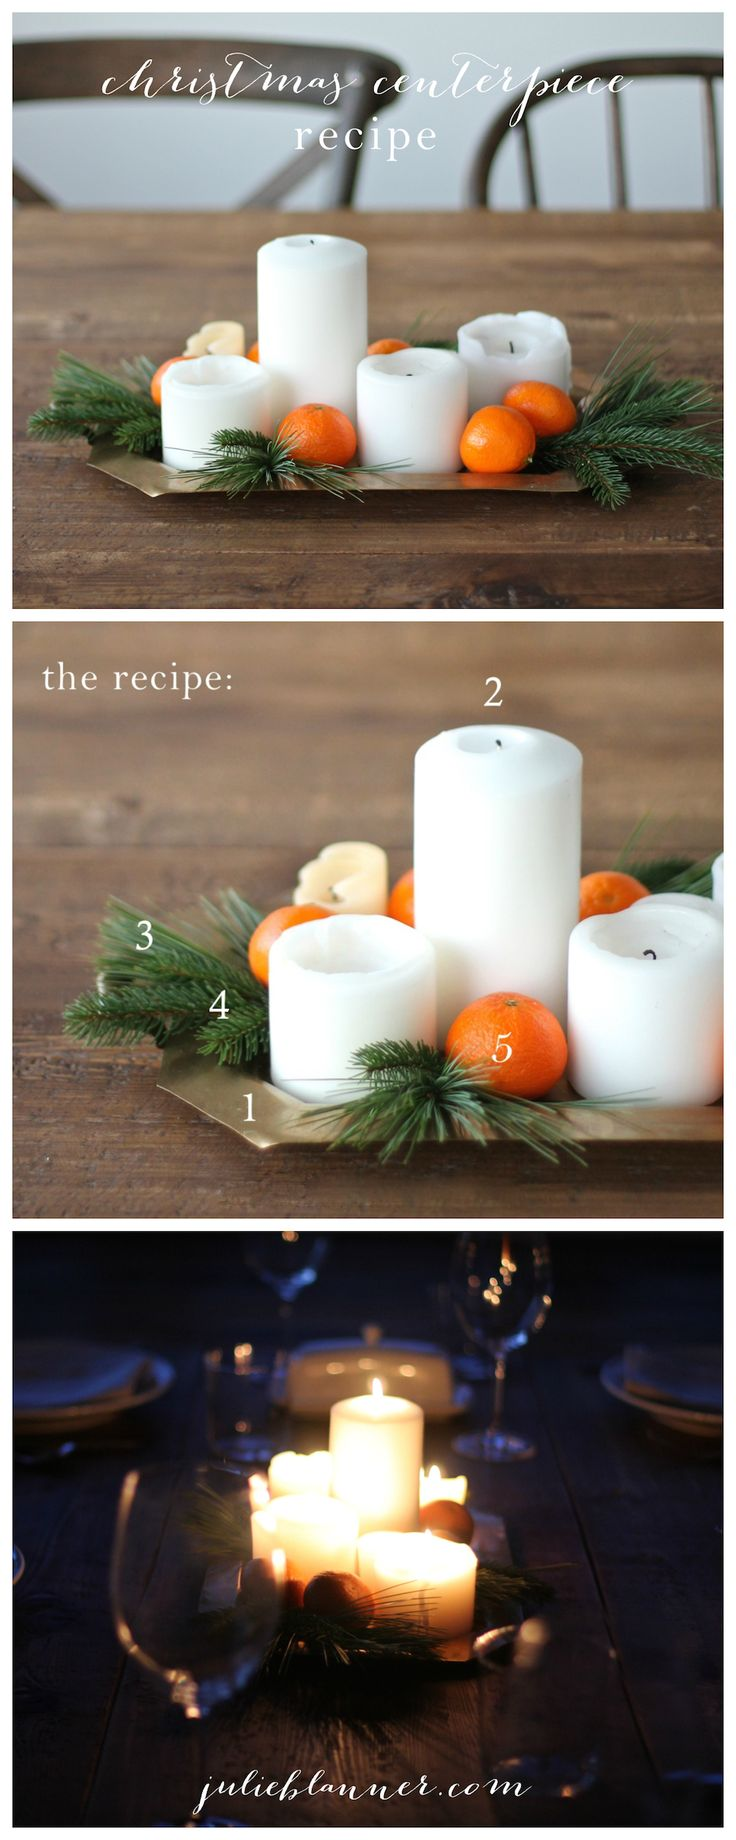 Learn how to make a Christmas centerpiece with things you already have with this easy step-by-step tutorial for beginners!